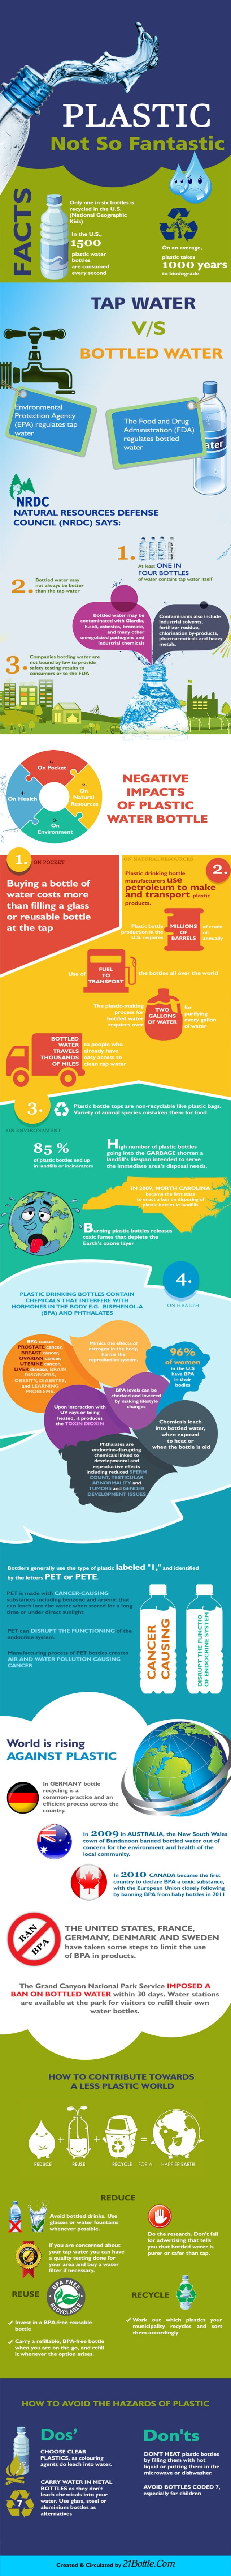 Infographic_hazards of plastic